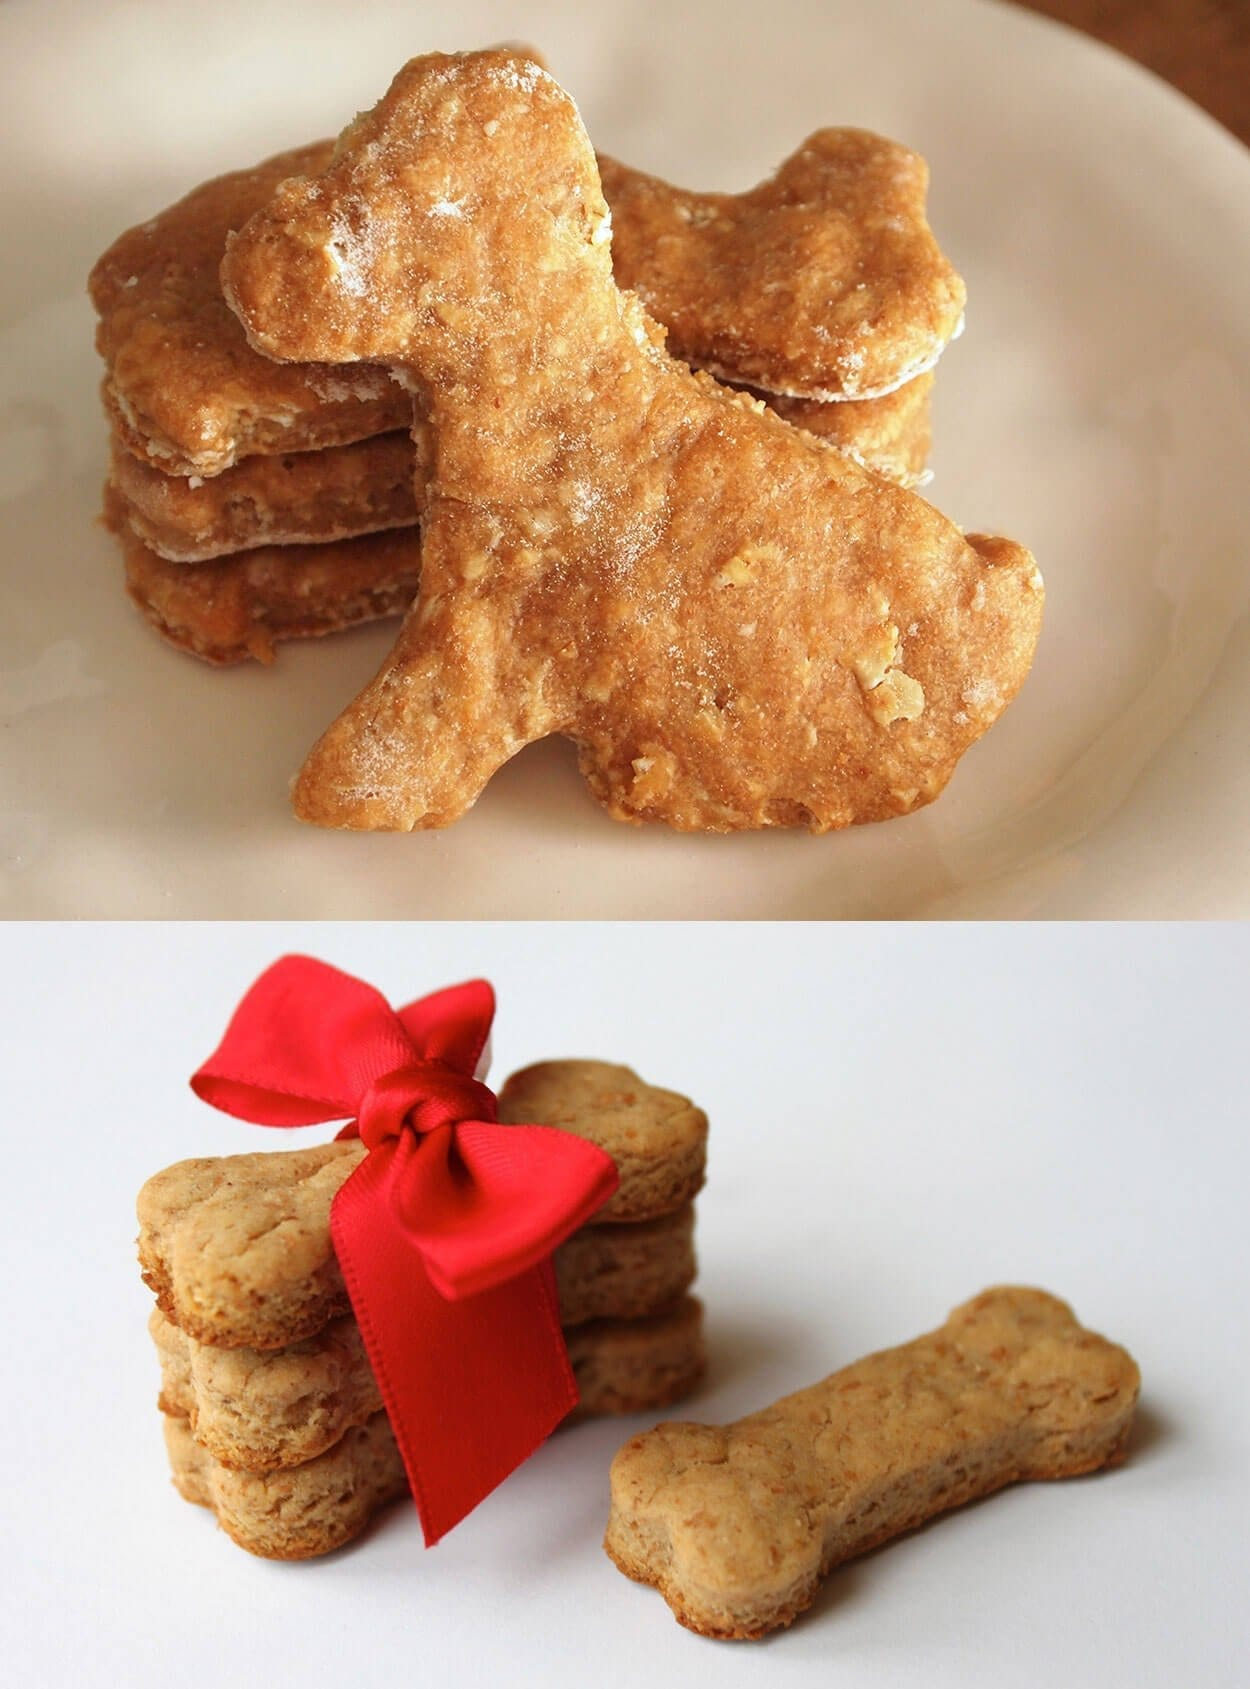 All-natural doggie treats. Made with Love.